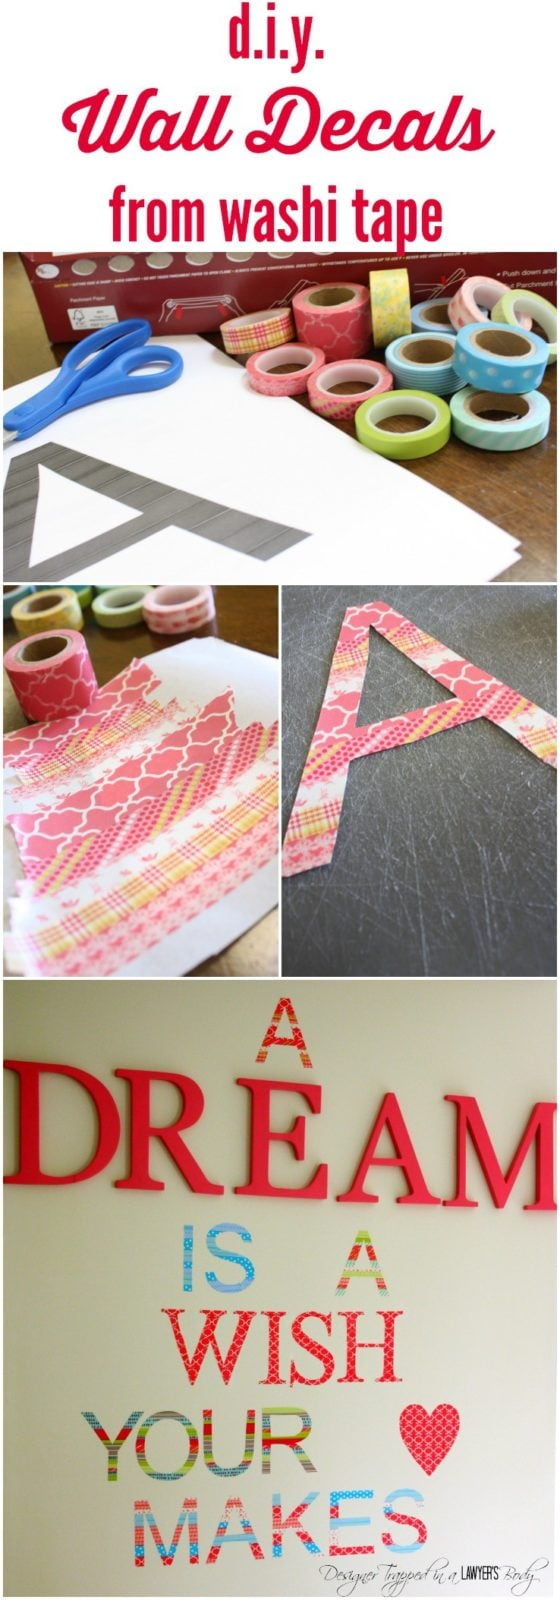 DIY Washi Tape Wall Decals Super Easy Adorable Designer Trapped - Make your own wall decal